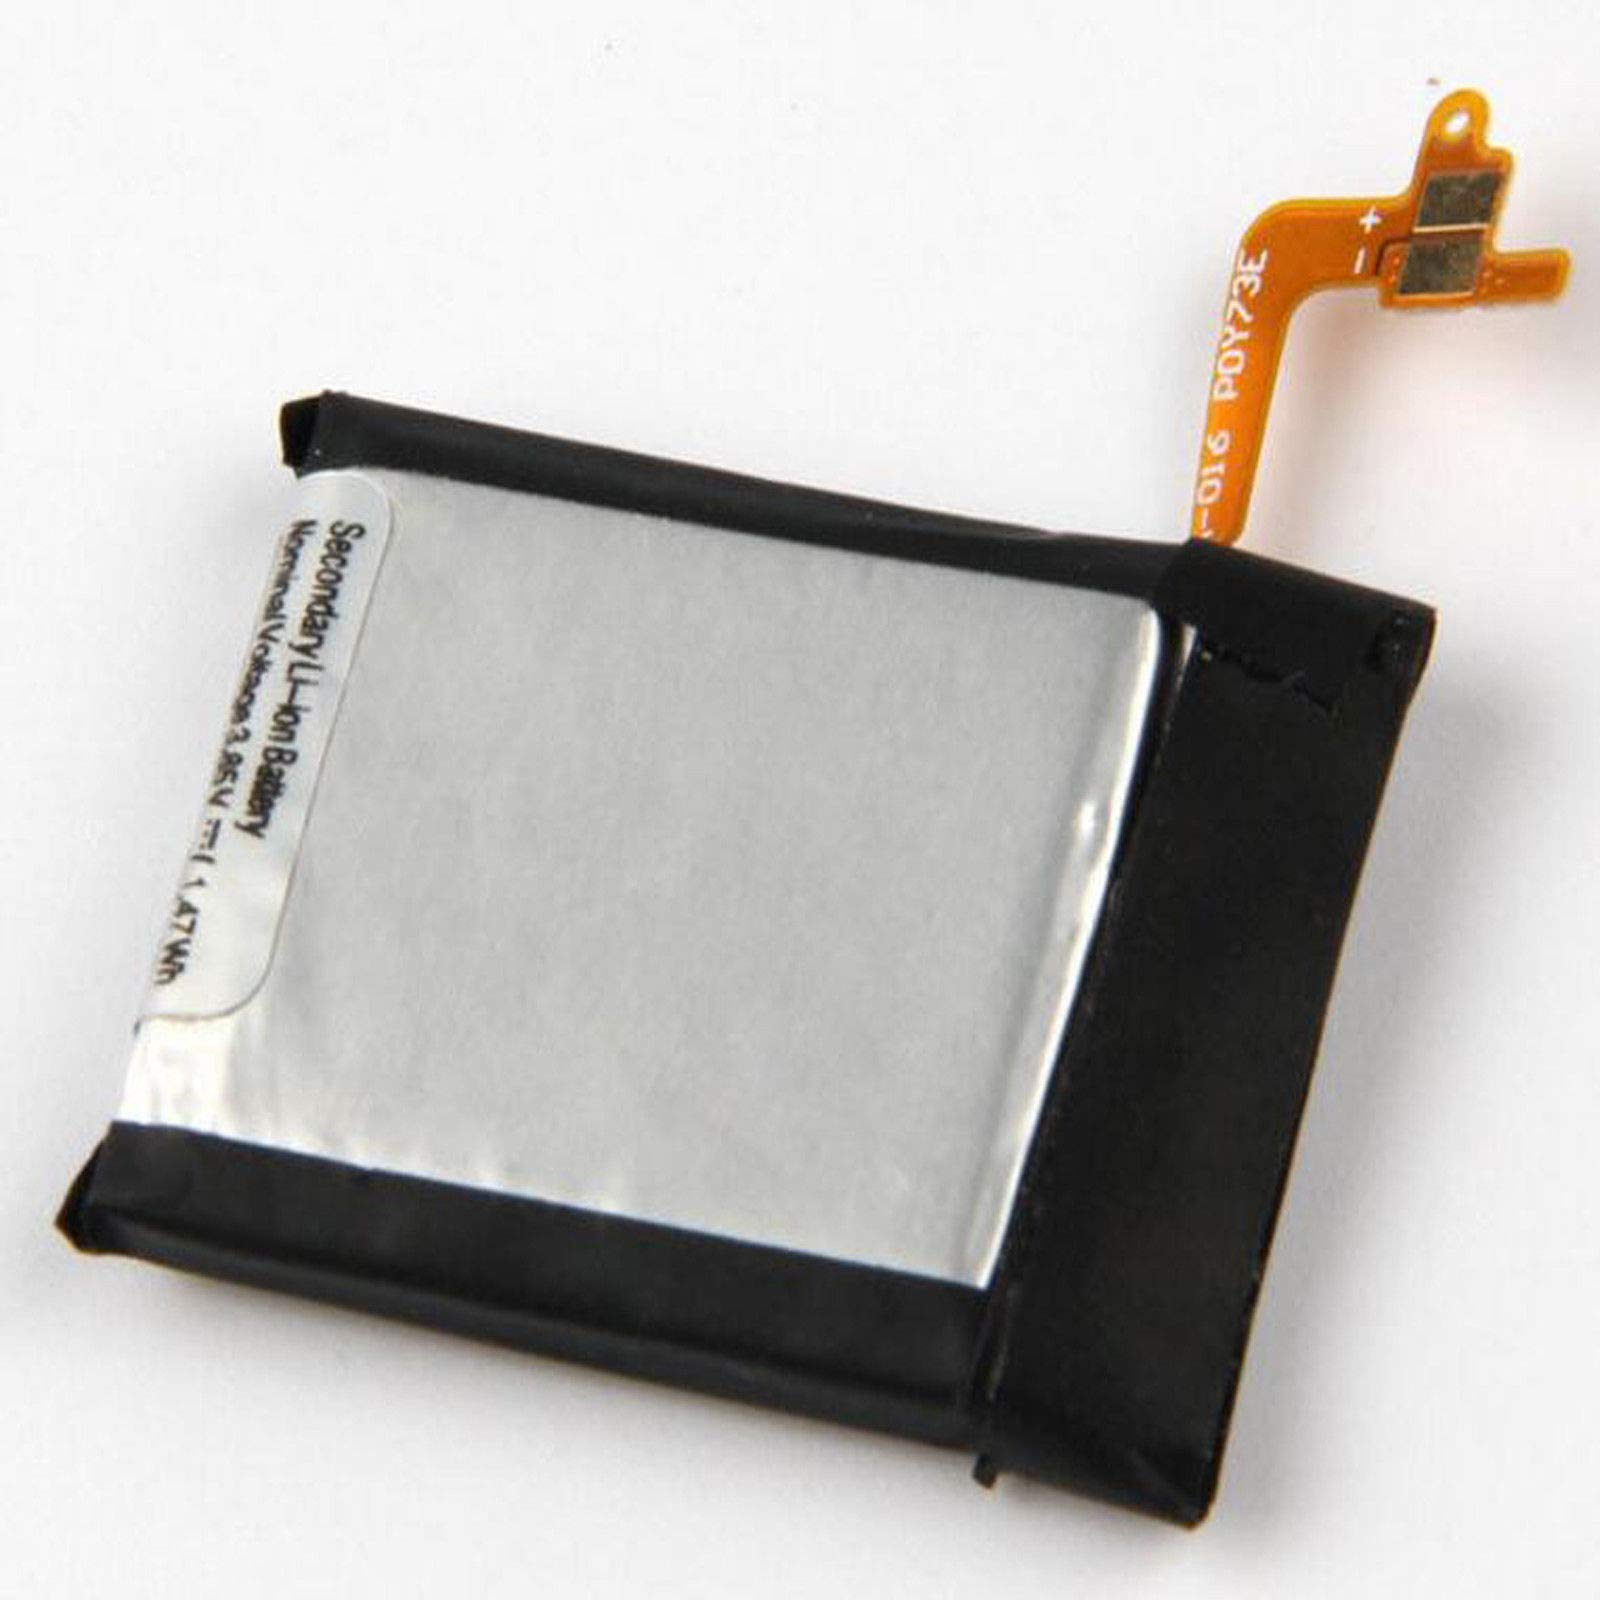 Tesurty Replacement Battery for S3 Frontier SM-R760, S3 Classic R770, R760, R770, BR760, R765 EB-BR760A [3.85V 380mAh] GH43-04699A